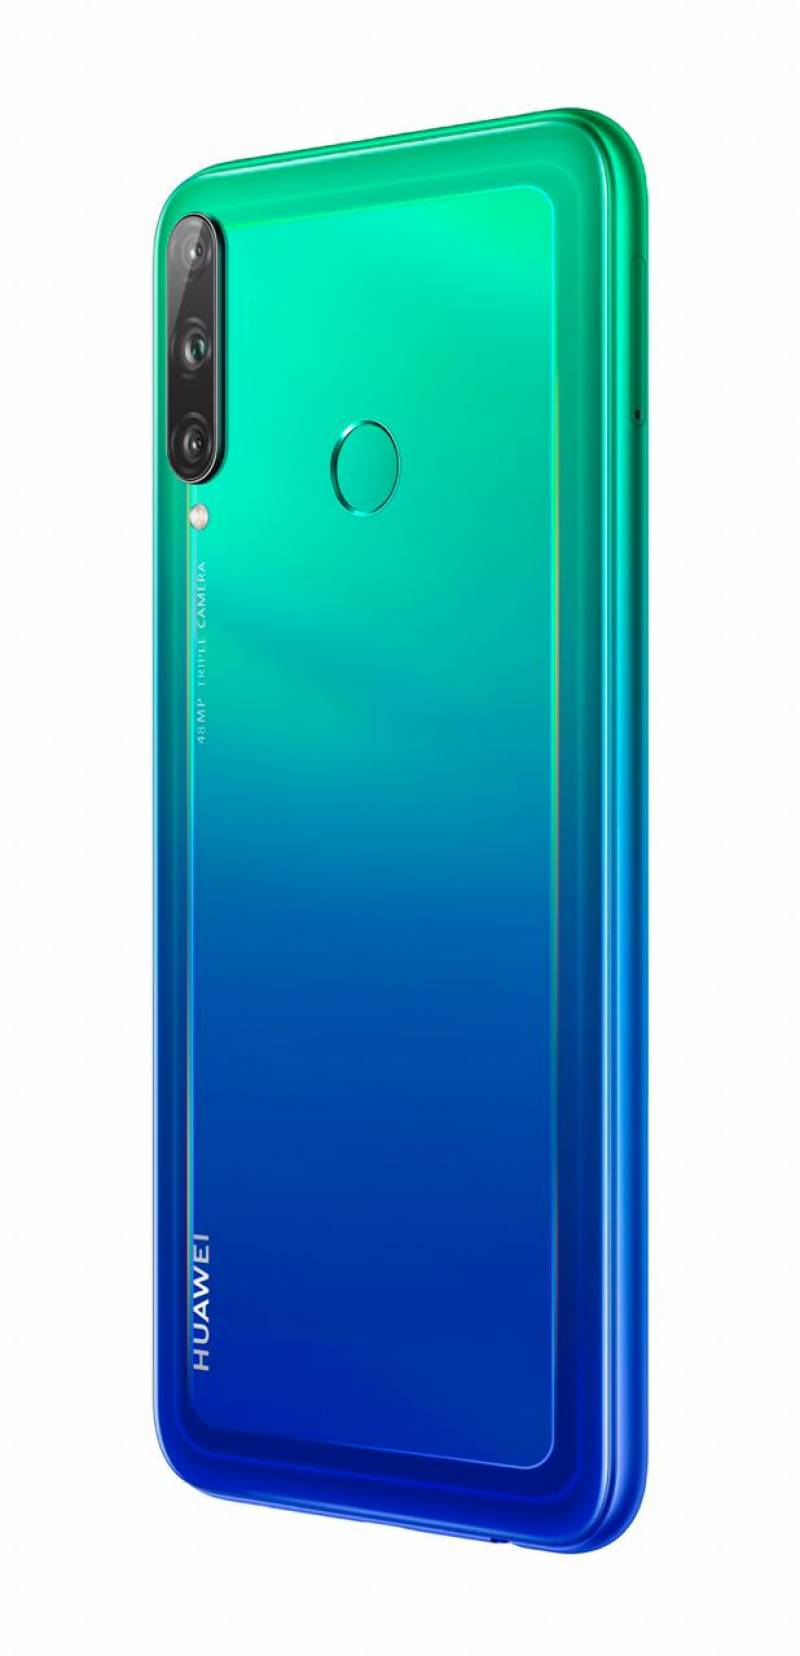 Huawei Y7p with 48MP camera and 4,000 mAh battery to be launched on March 15: expected price, specifications